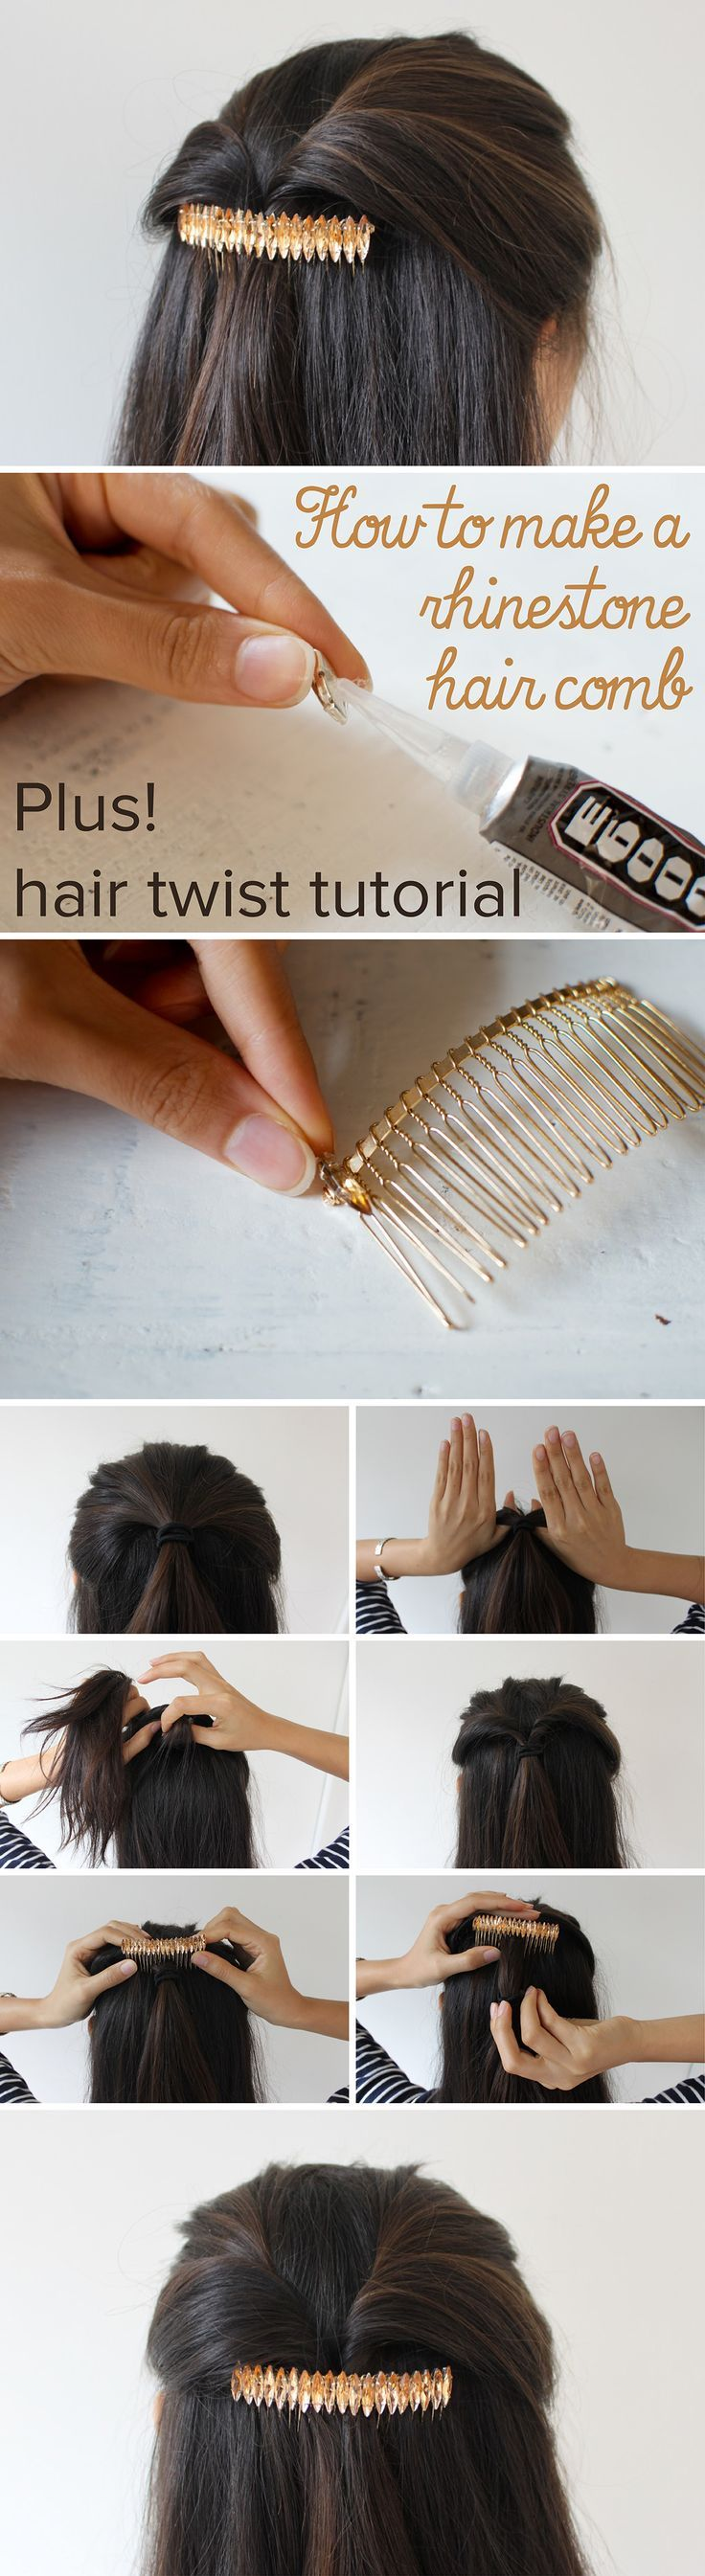 Create this elegant rhinestone hair comb and twisted hair style in a few simple steps. www.ehow.com/...